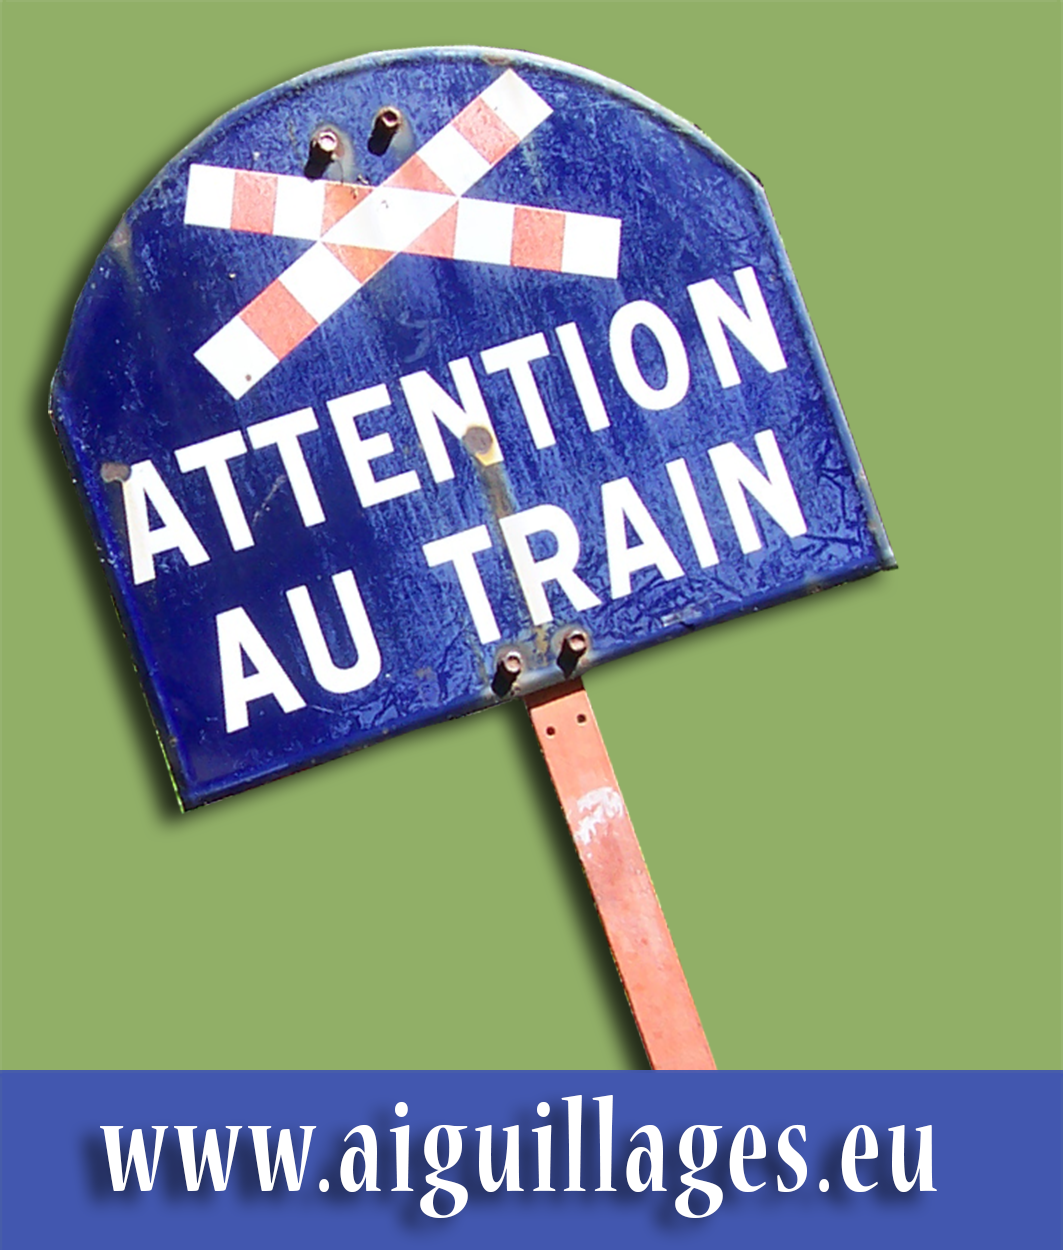 logo_aiguillages.png